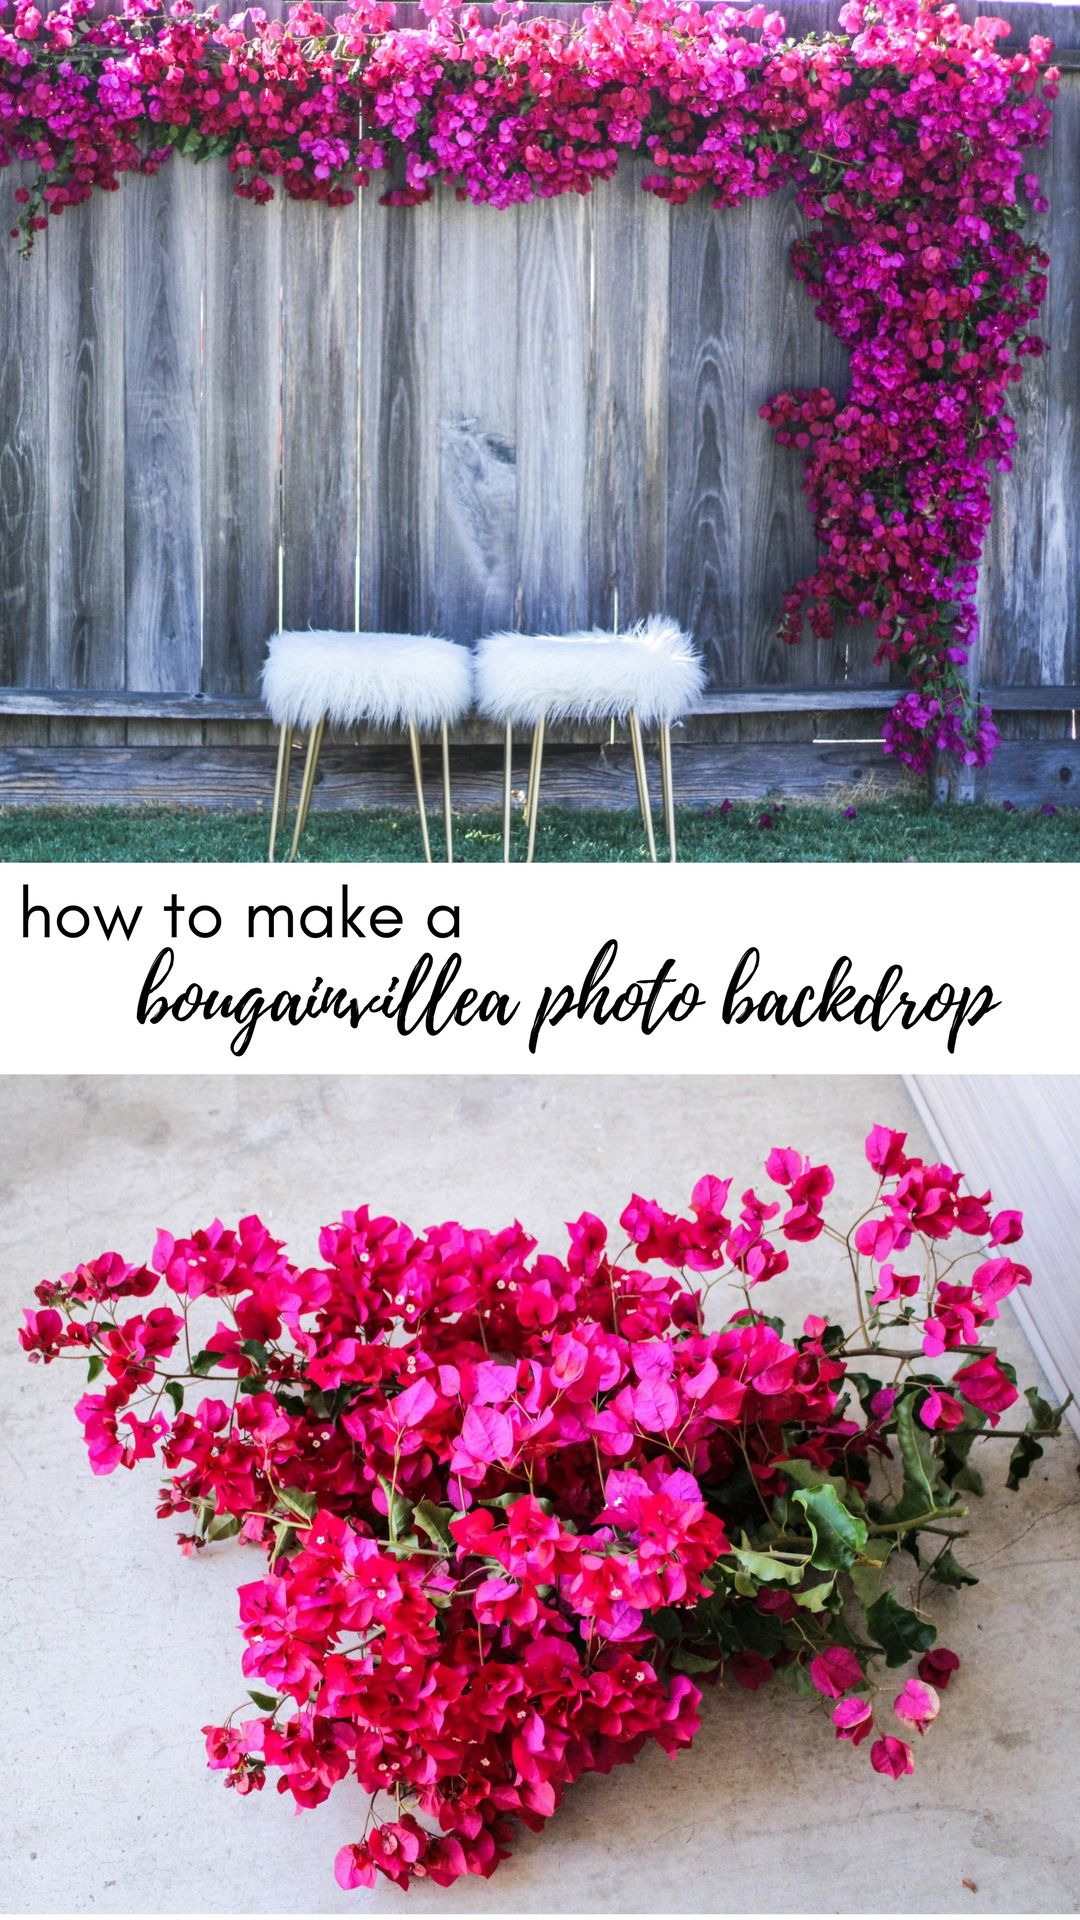 Bougainvillea Photo Backdrop \\  www.crystalcara.com